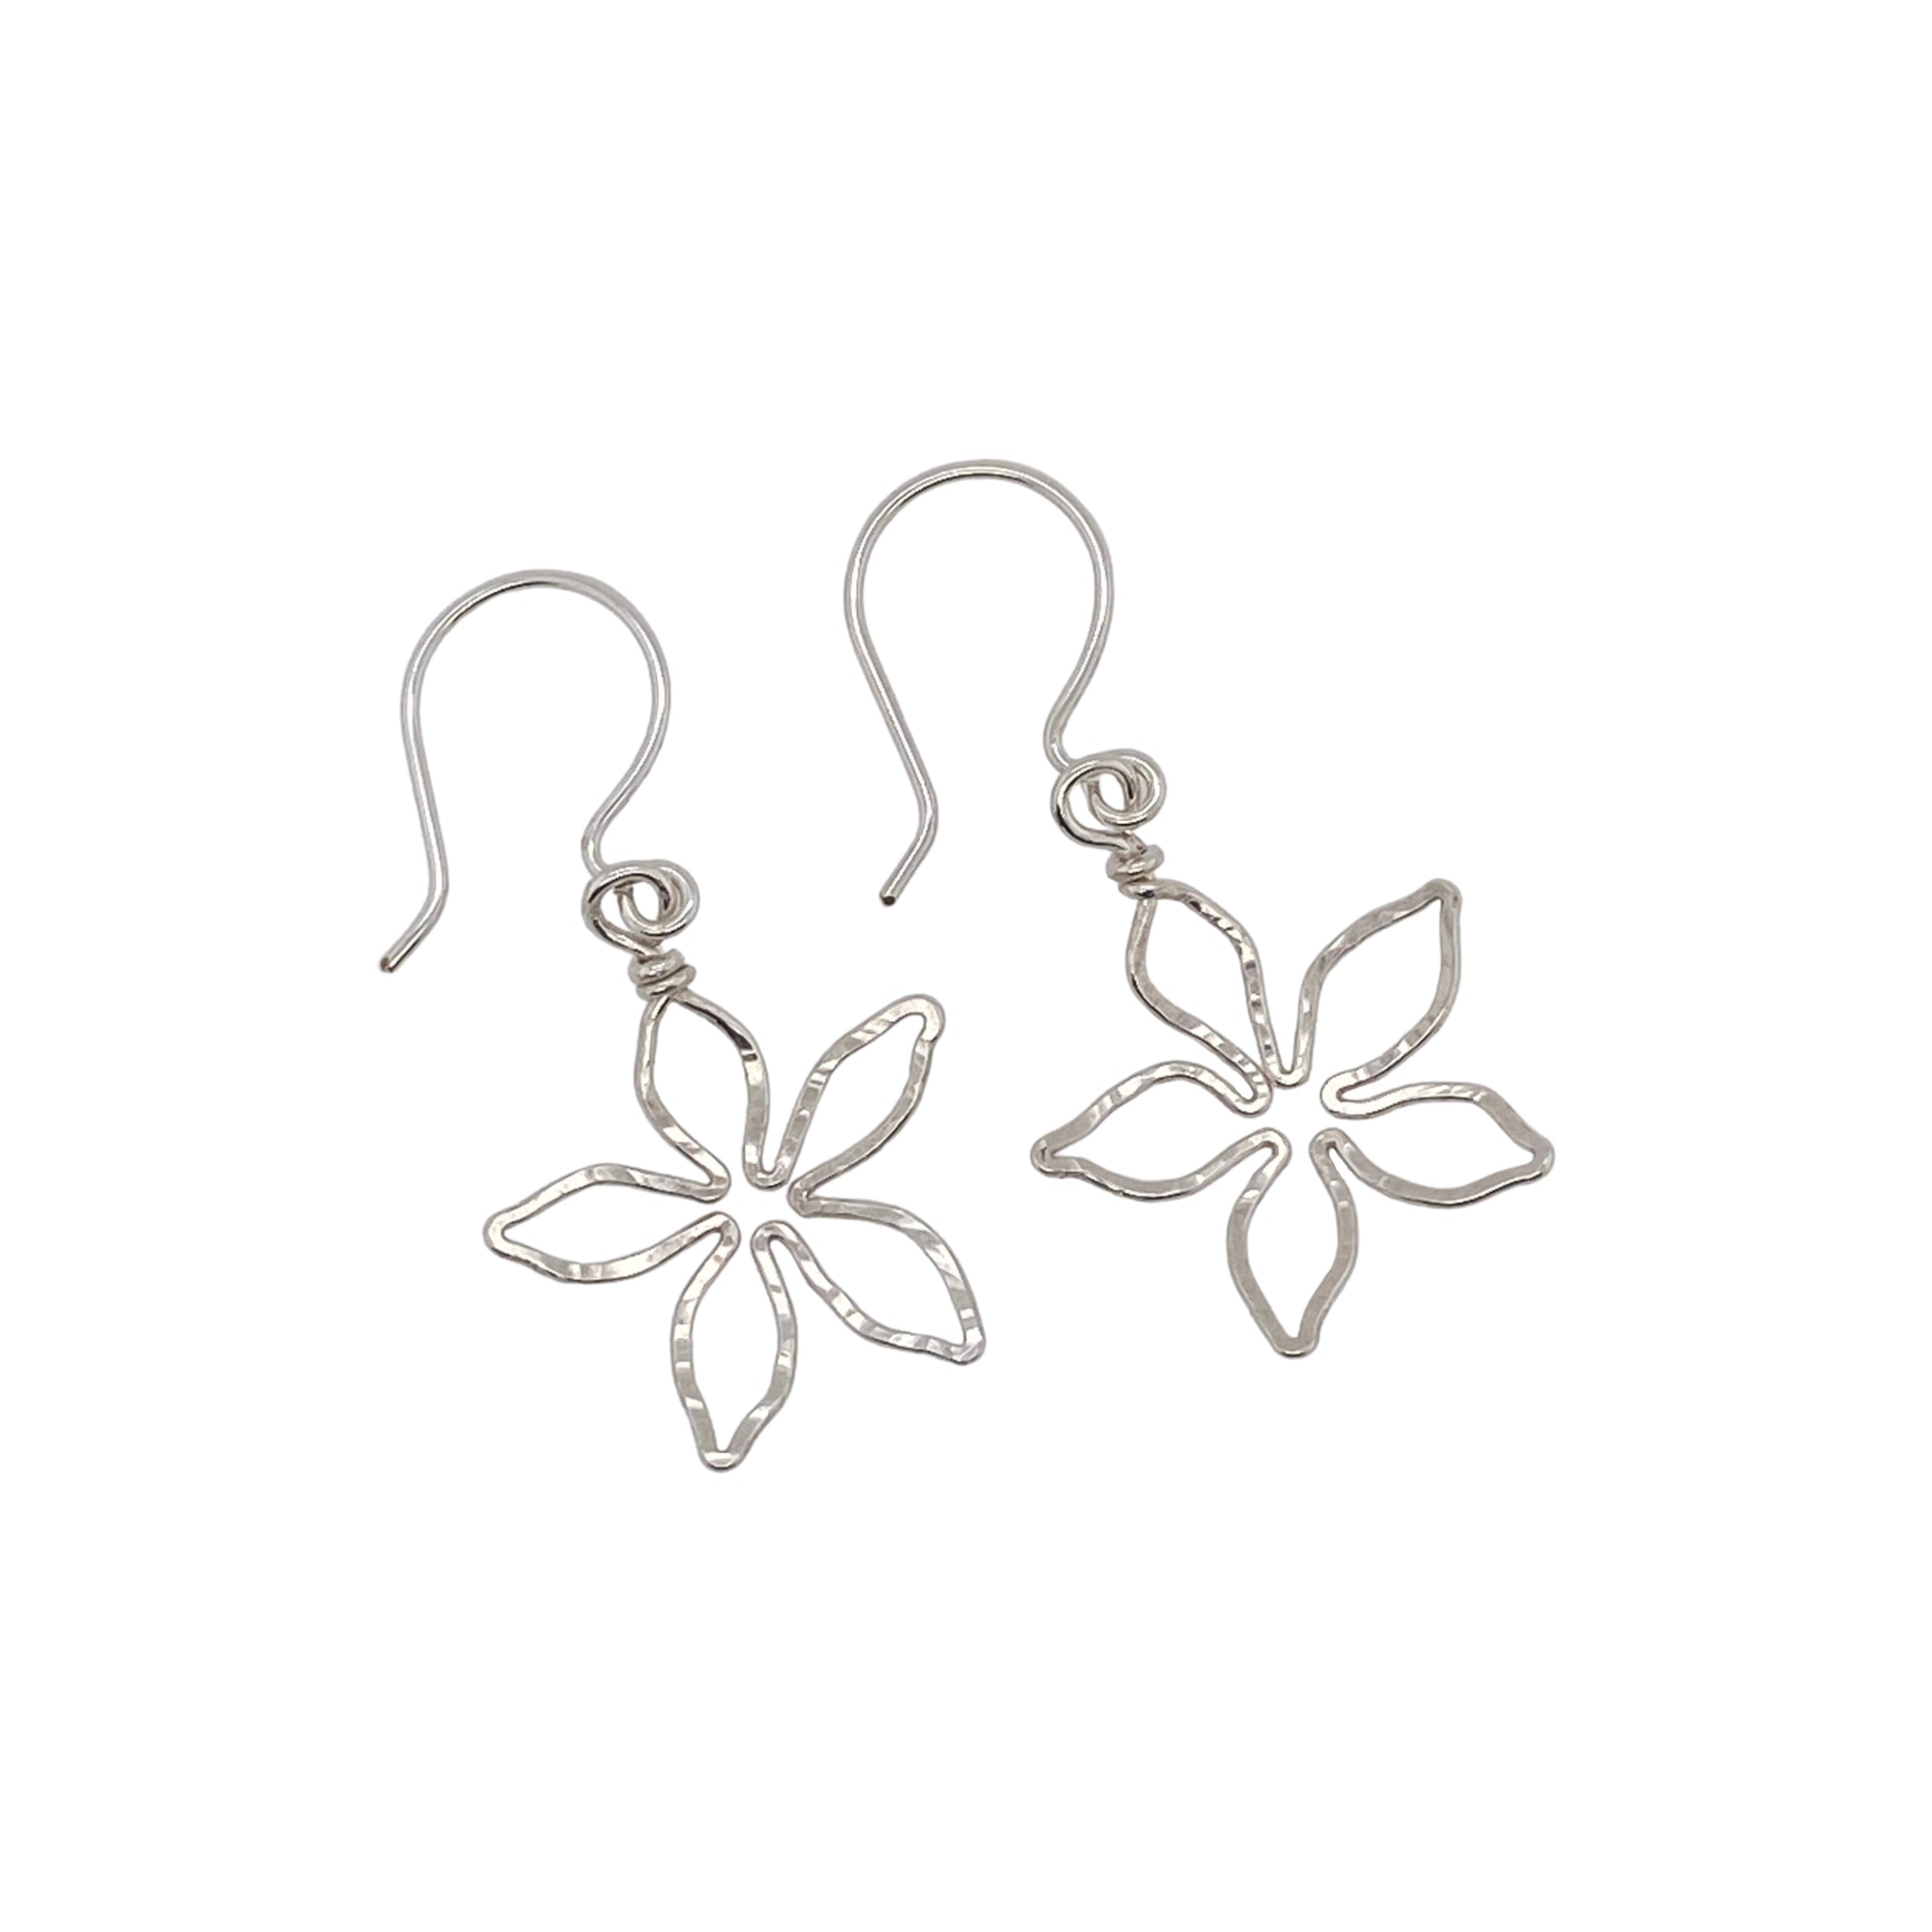 Camille Patton Violet 5 Petal Wire Jewelry Earrings S01